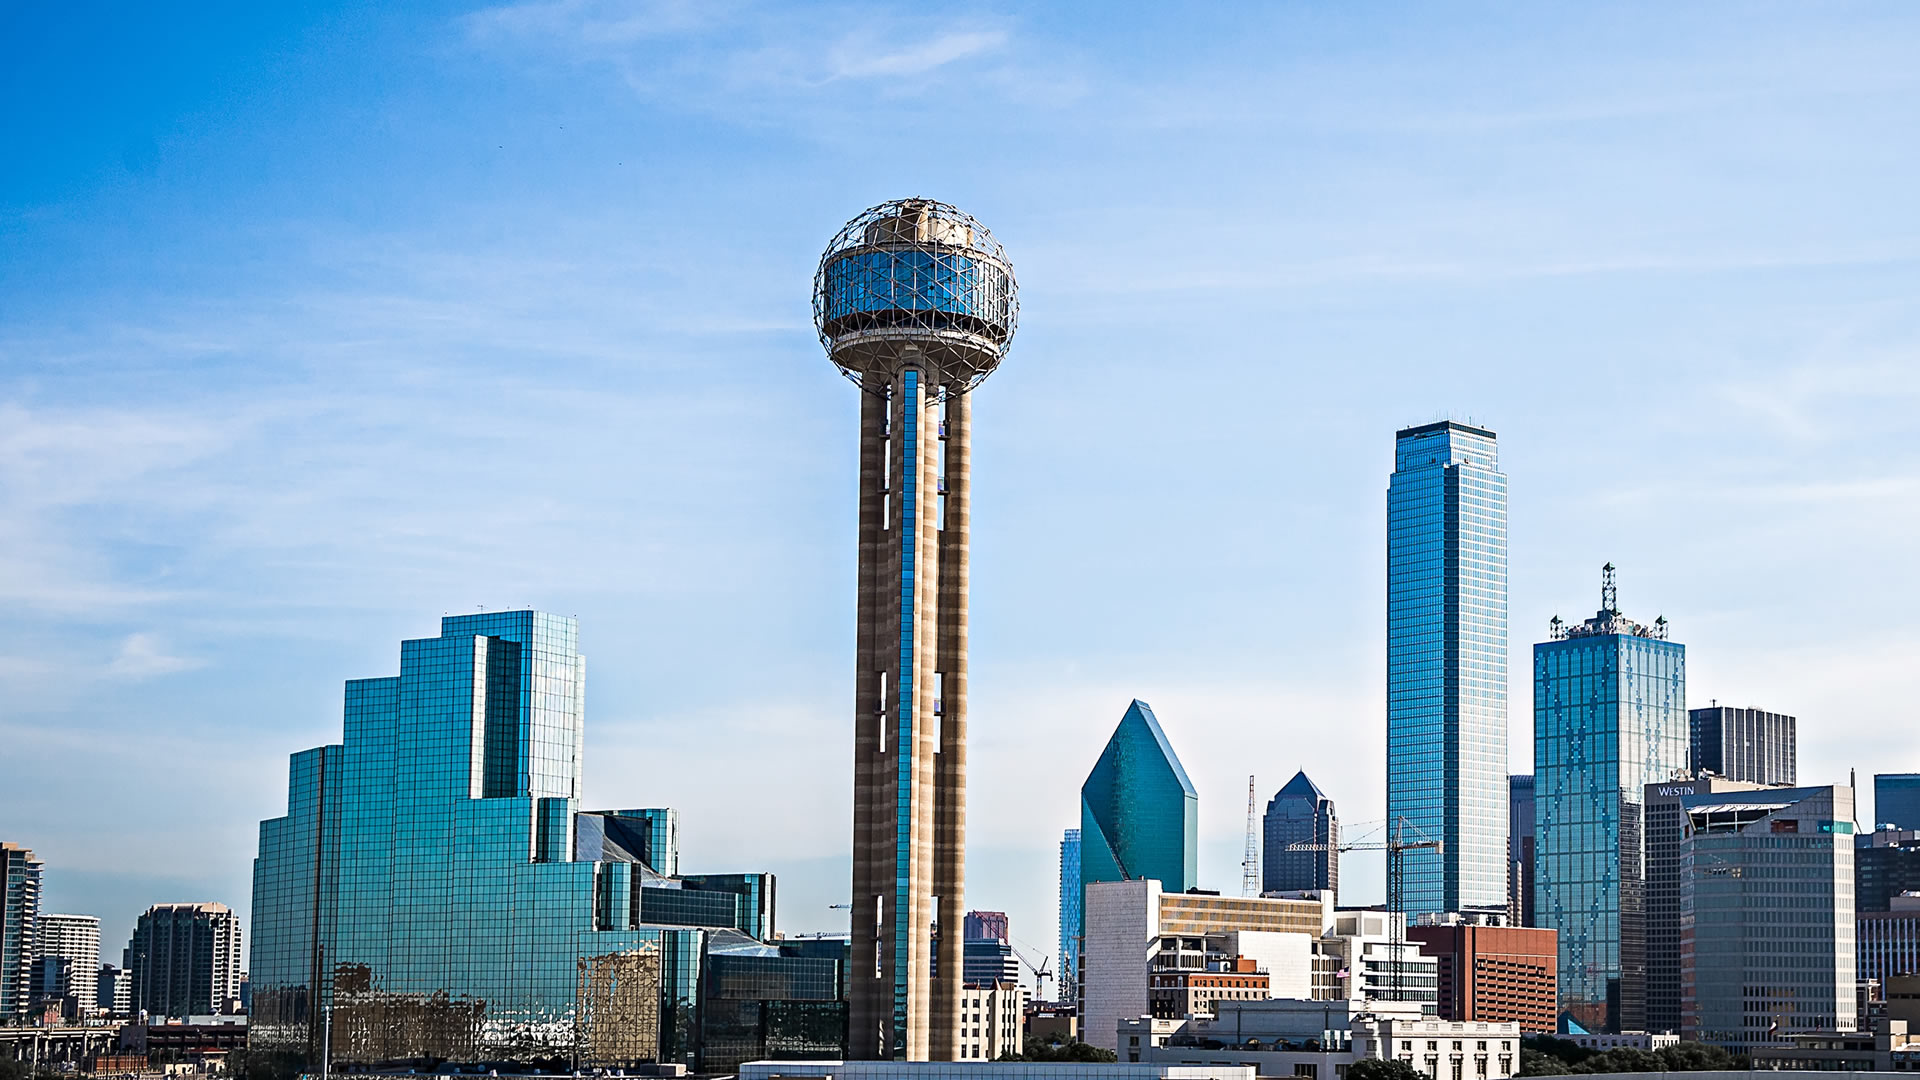 The Reunion Tower gives you a picturesque view of Dallas that you can't get anywhere else.